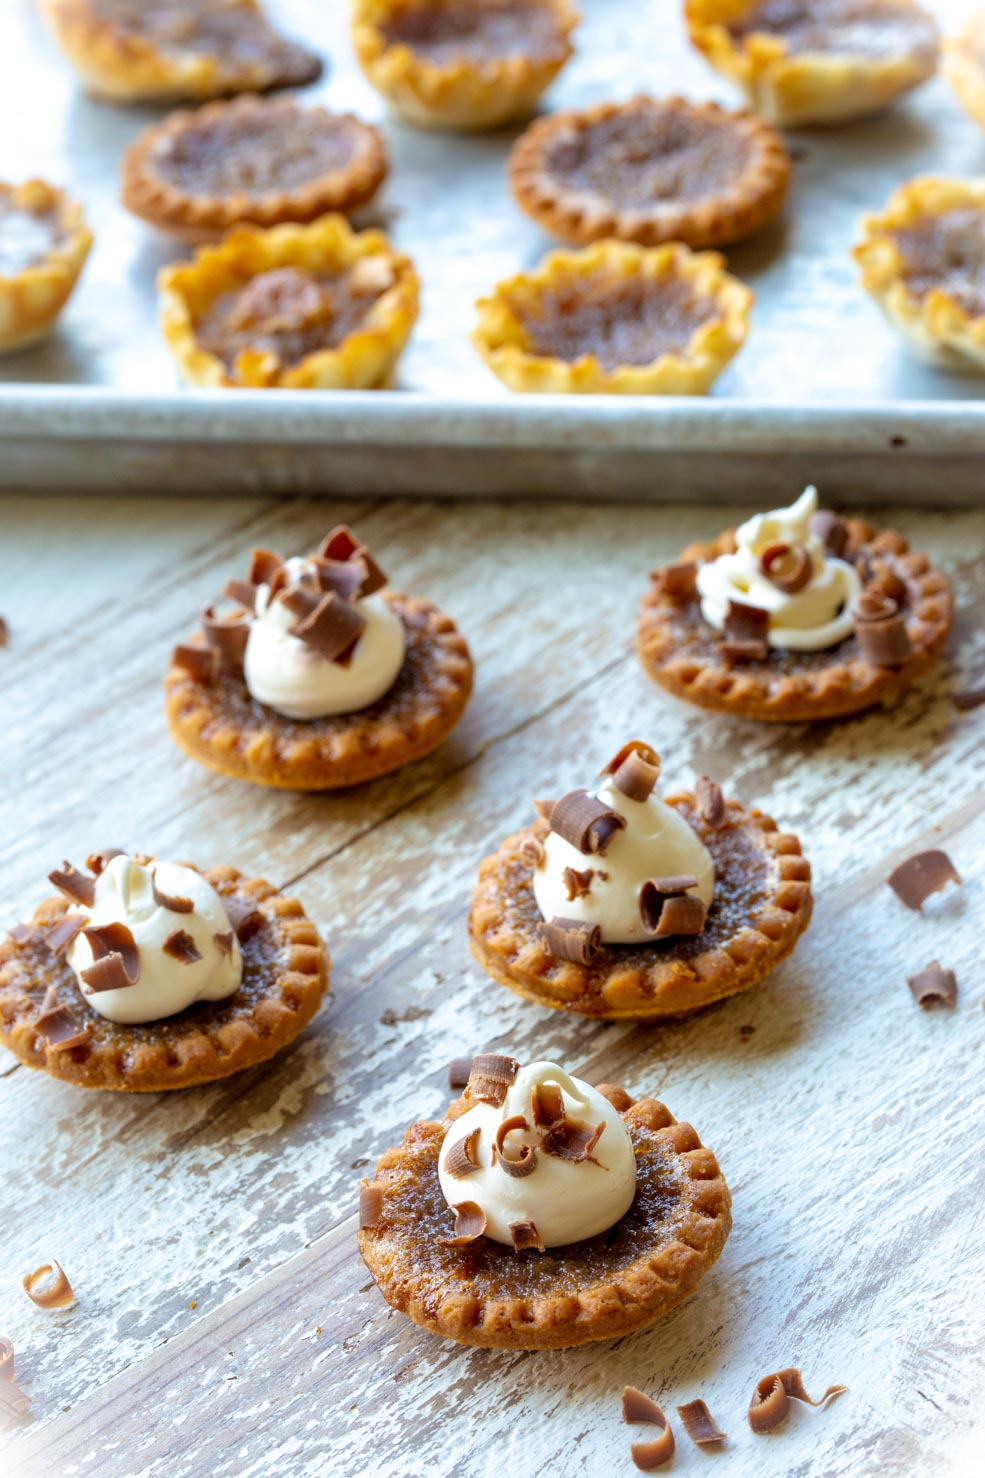 Pecan Apple Butter Tarts with Chocolate Shavings